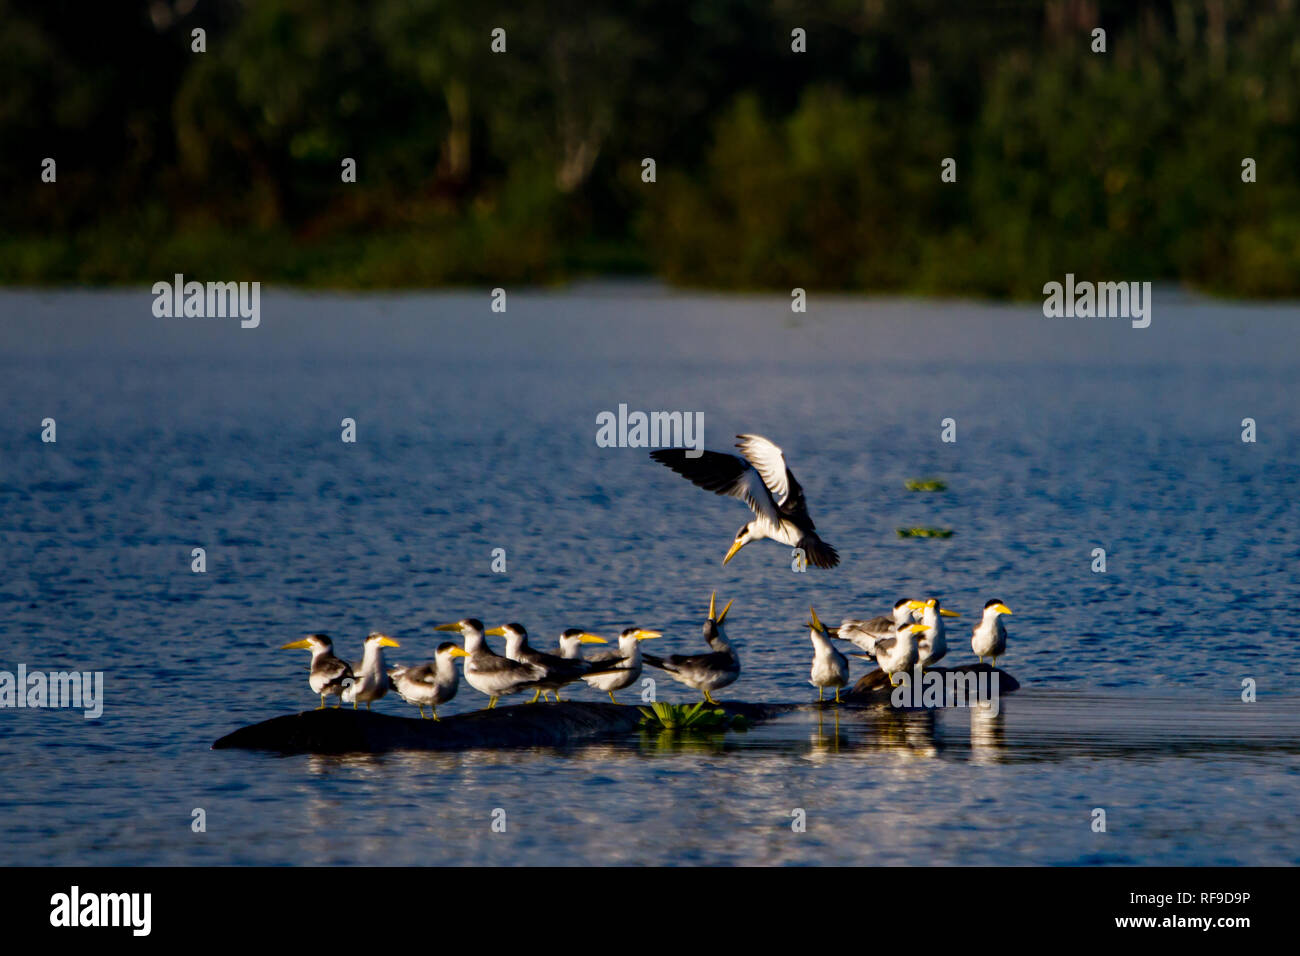 Large-billed terns, Phaetusa simplex, rest on a log in an oxbow lake in the Amazon region of Loreto, Peru - Stock Image